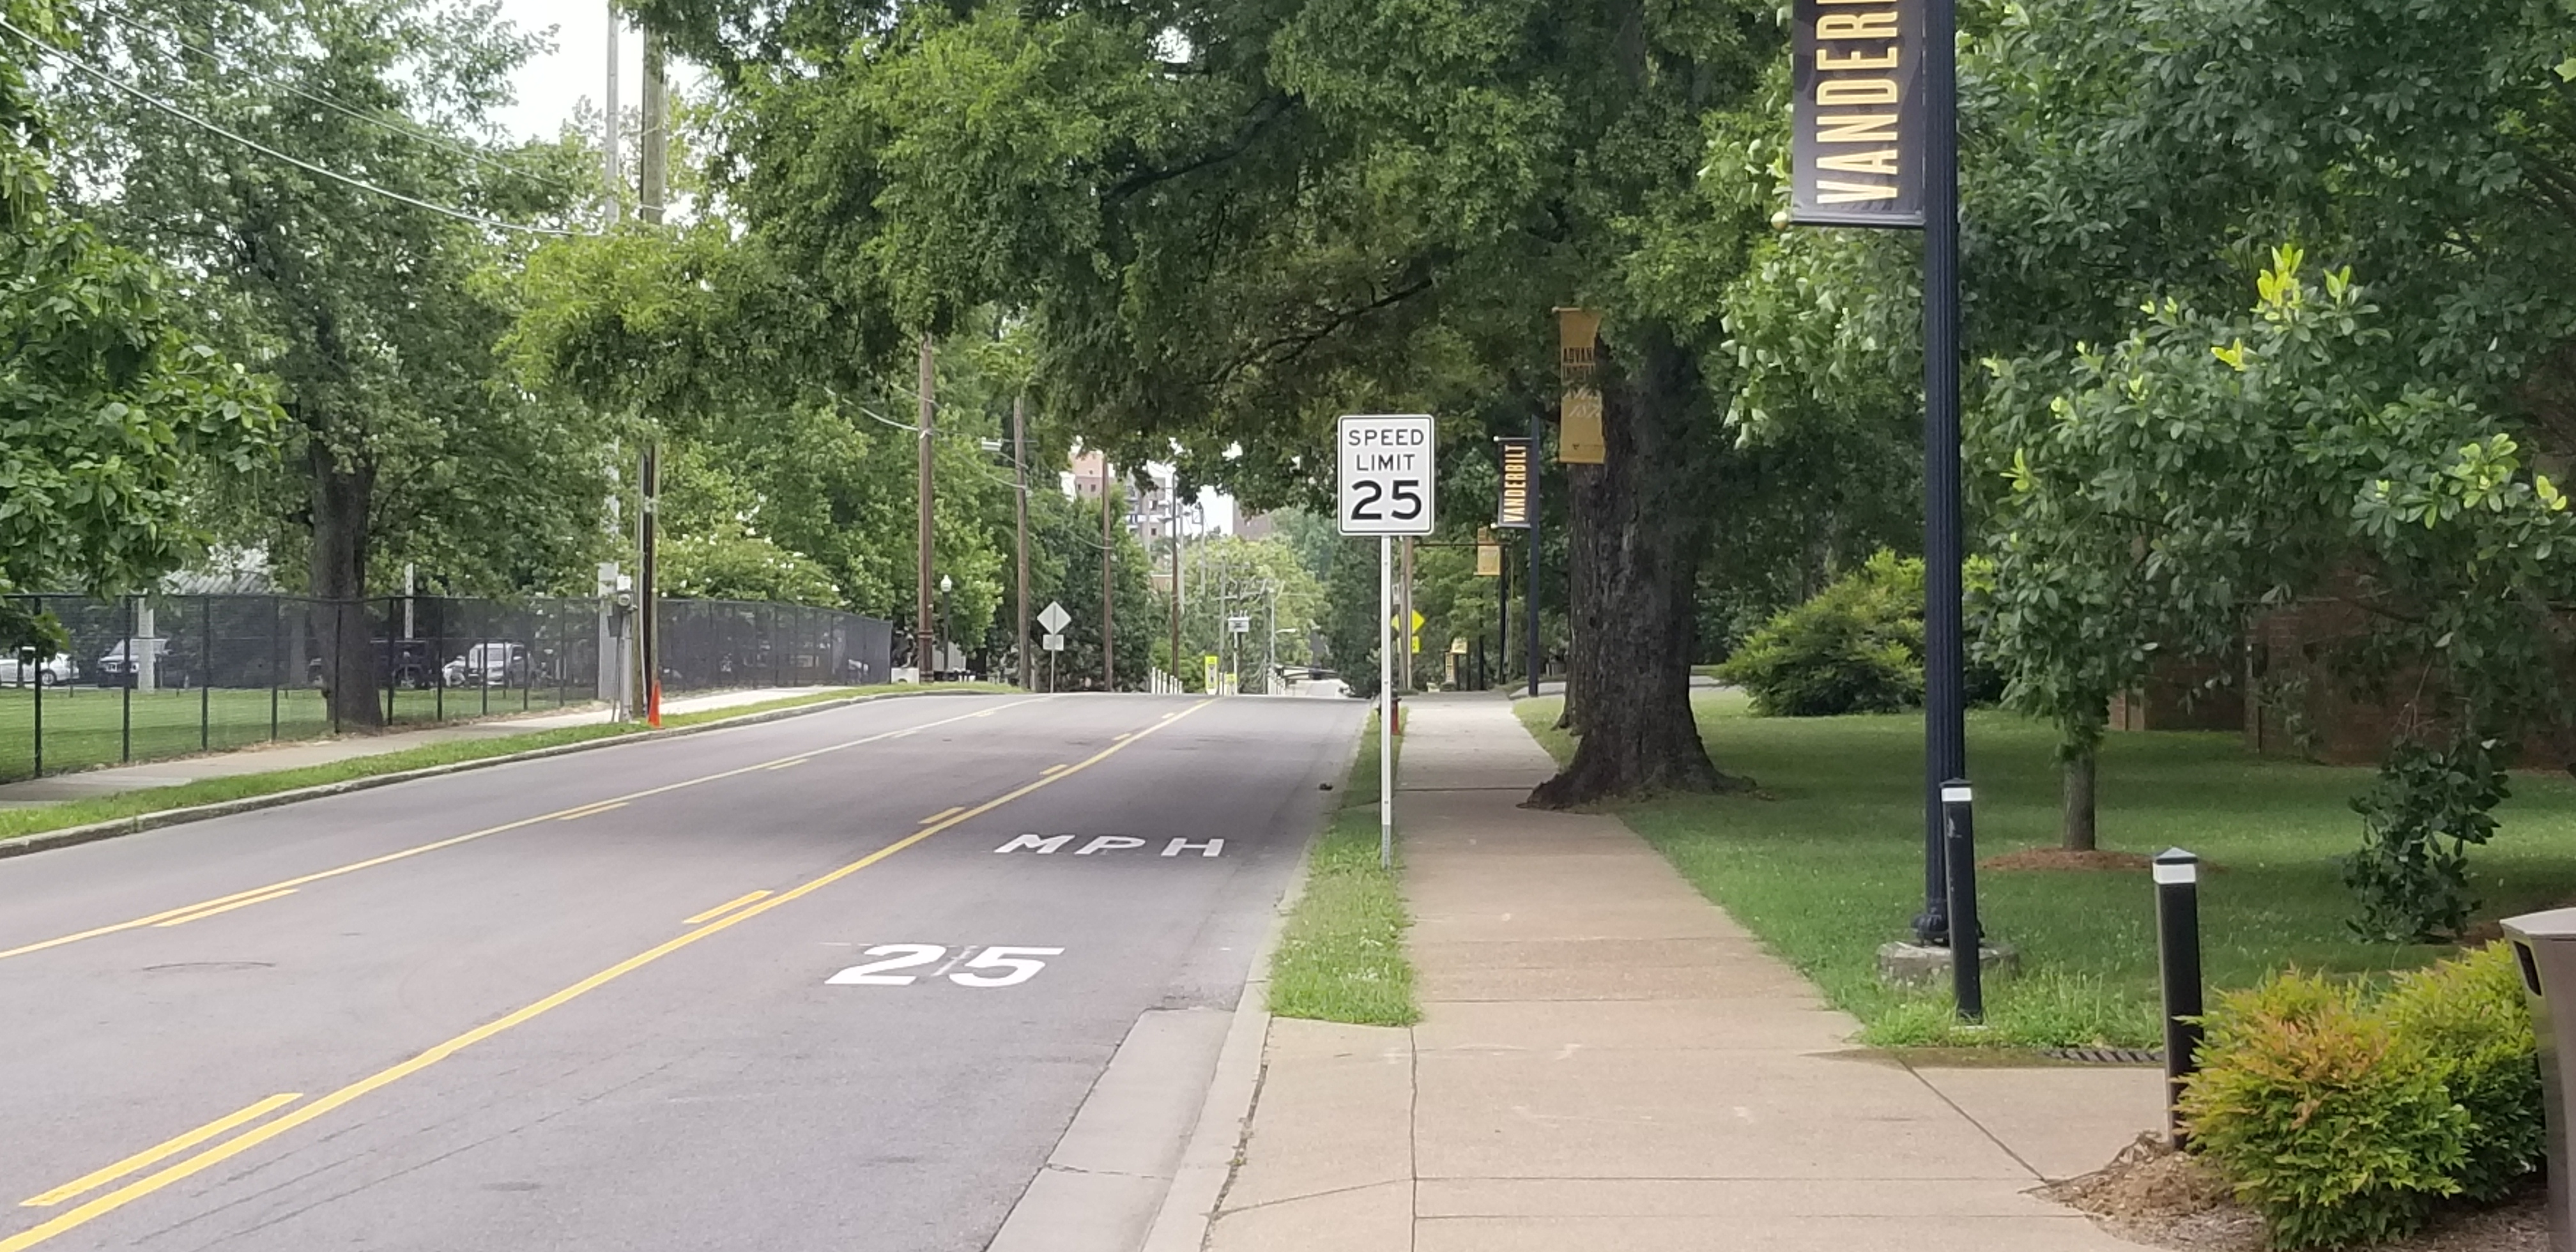 Campus speed limit